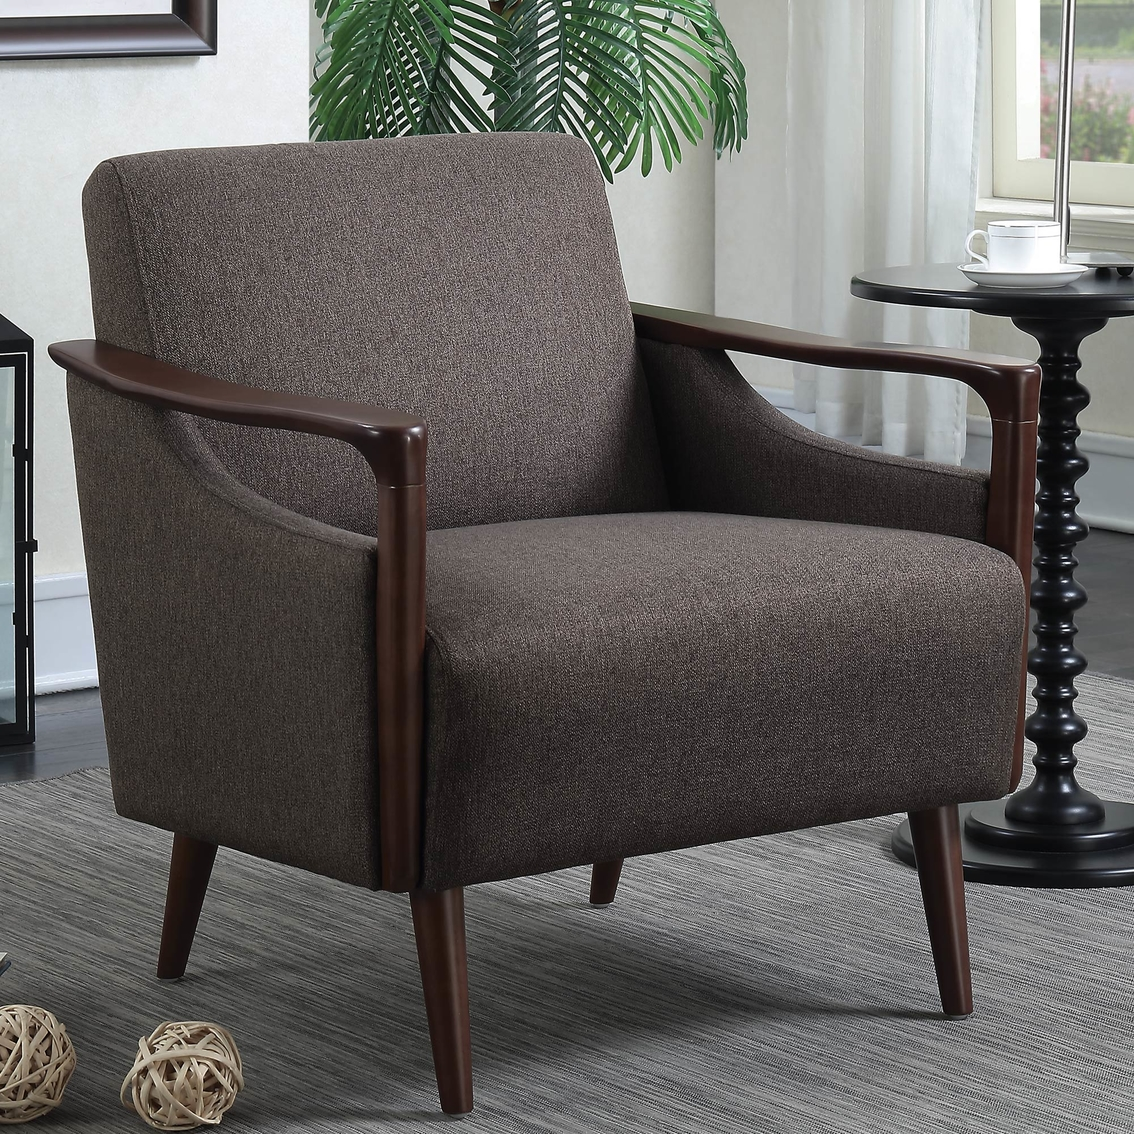 Mid Century Accent Chairs: Scott Living Mid Century Modern Accent Chair